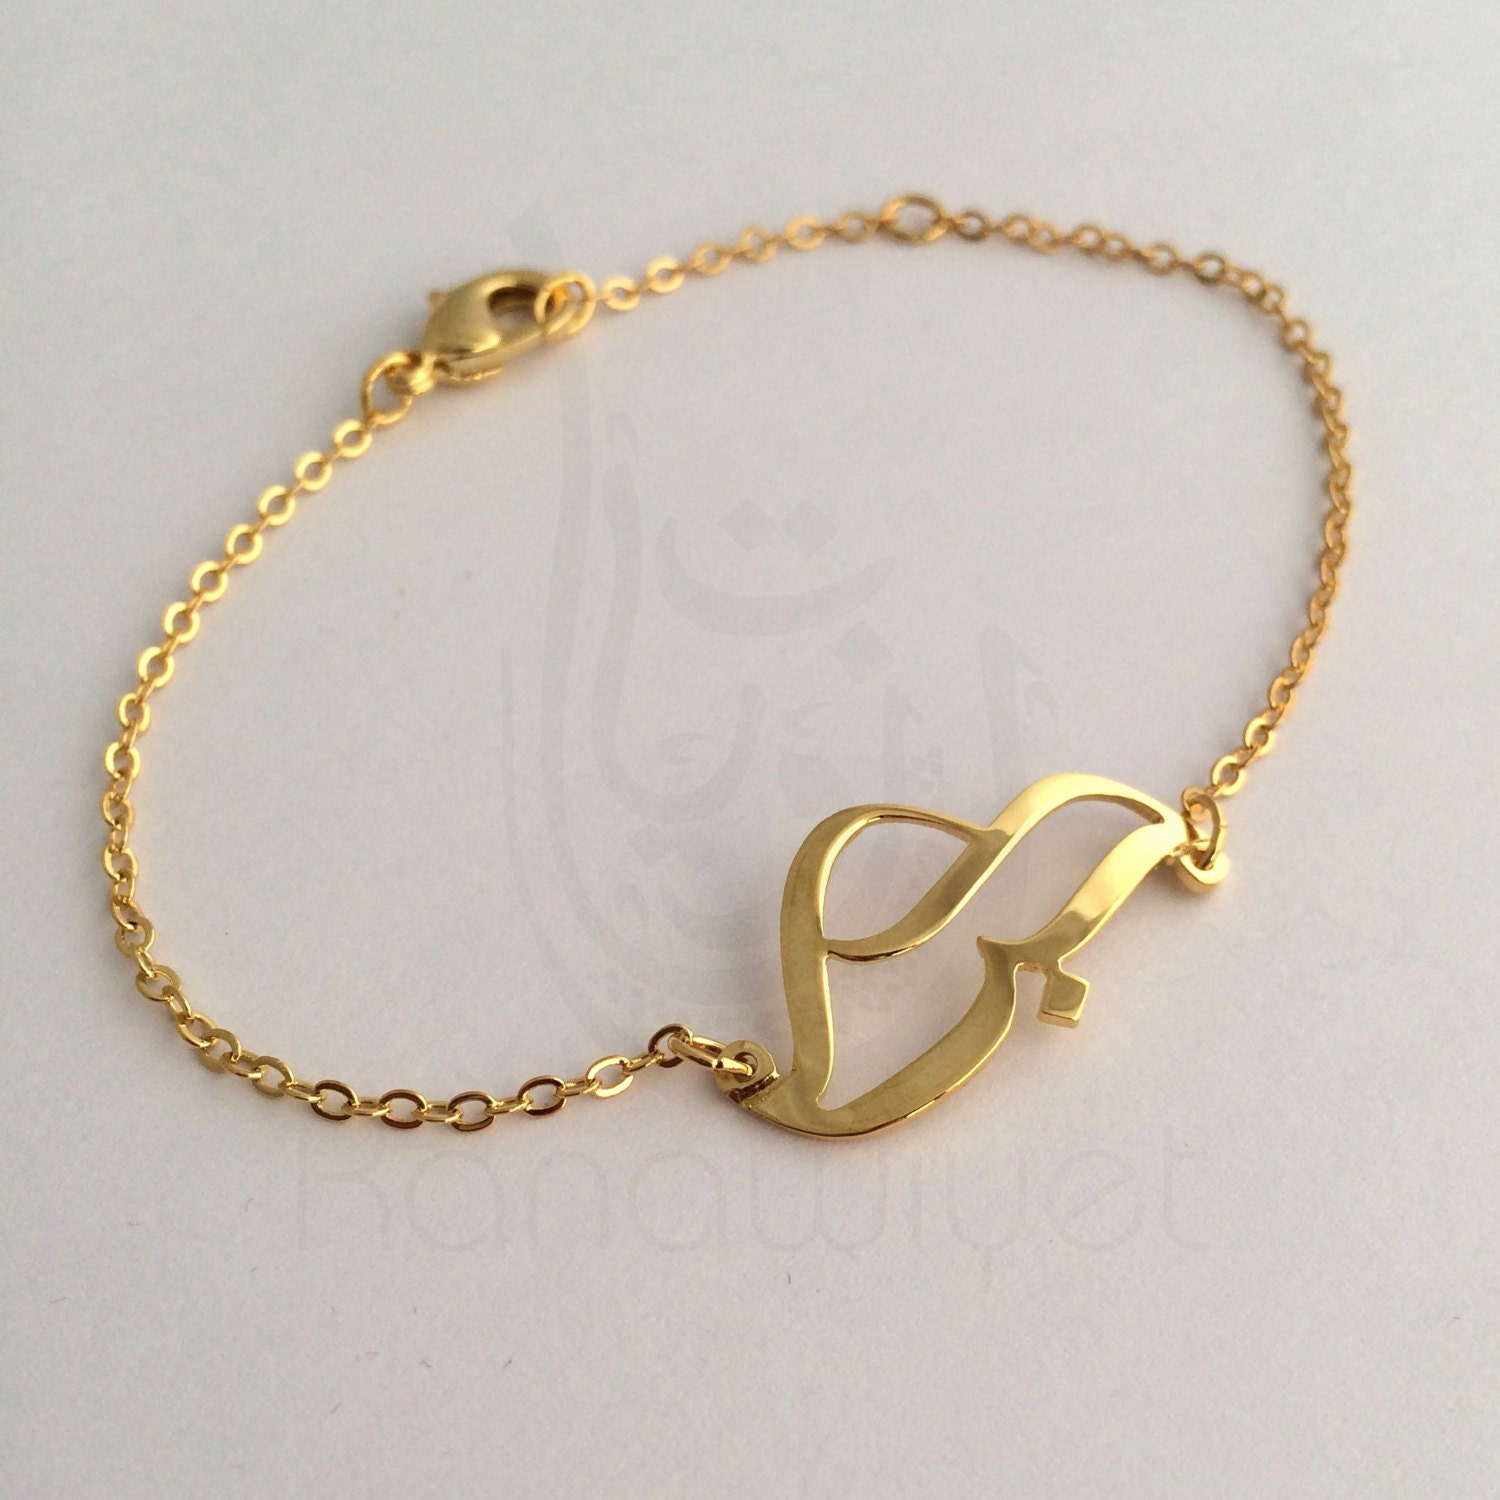 Love Free Form Arabic Calligraphy Bracelet By